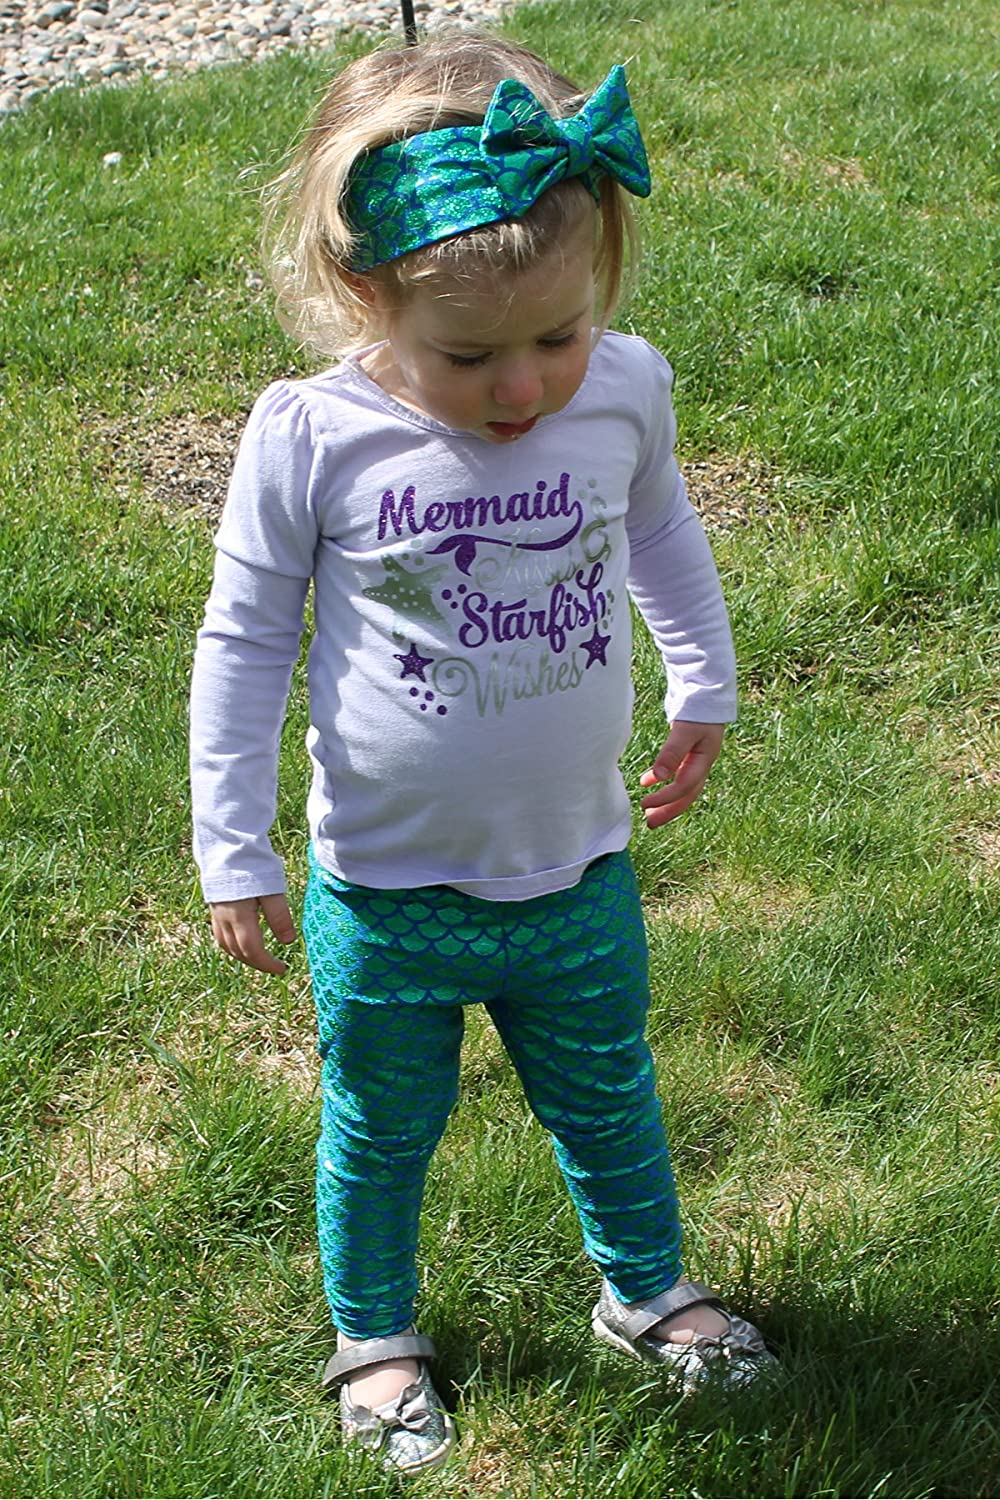 Mermaid Outfit For Toddler Girl